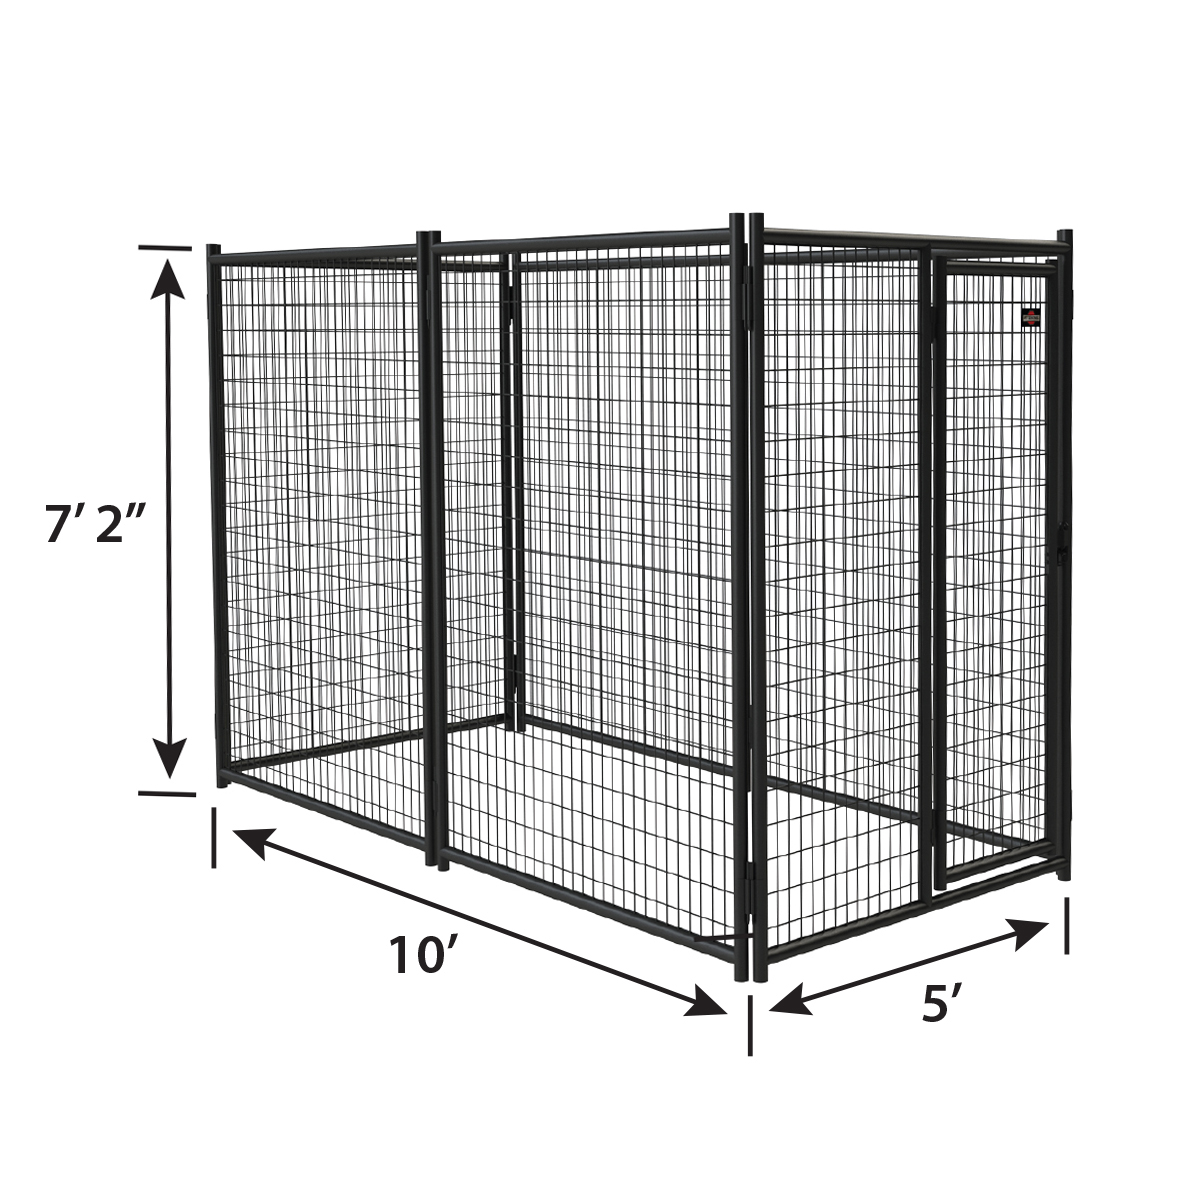 chain lnk fence simple gate kite instructions